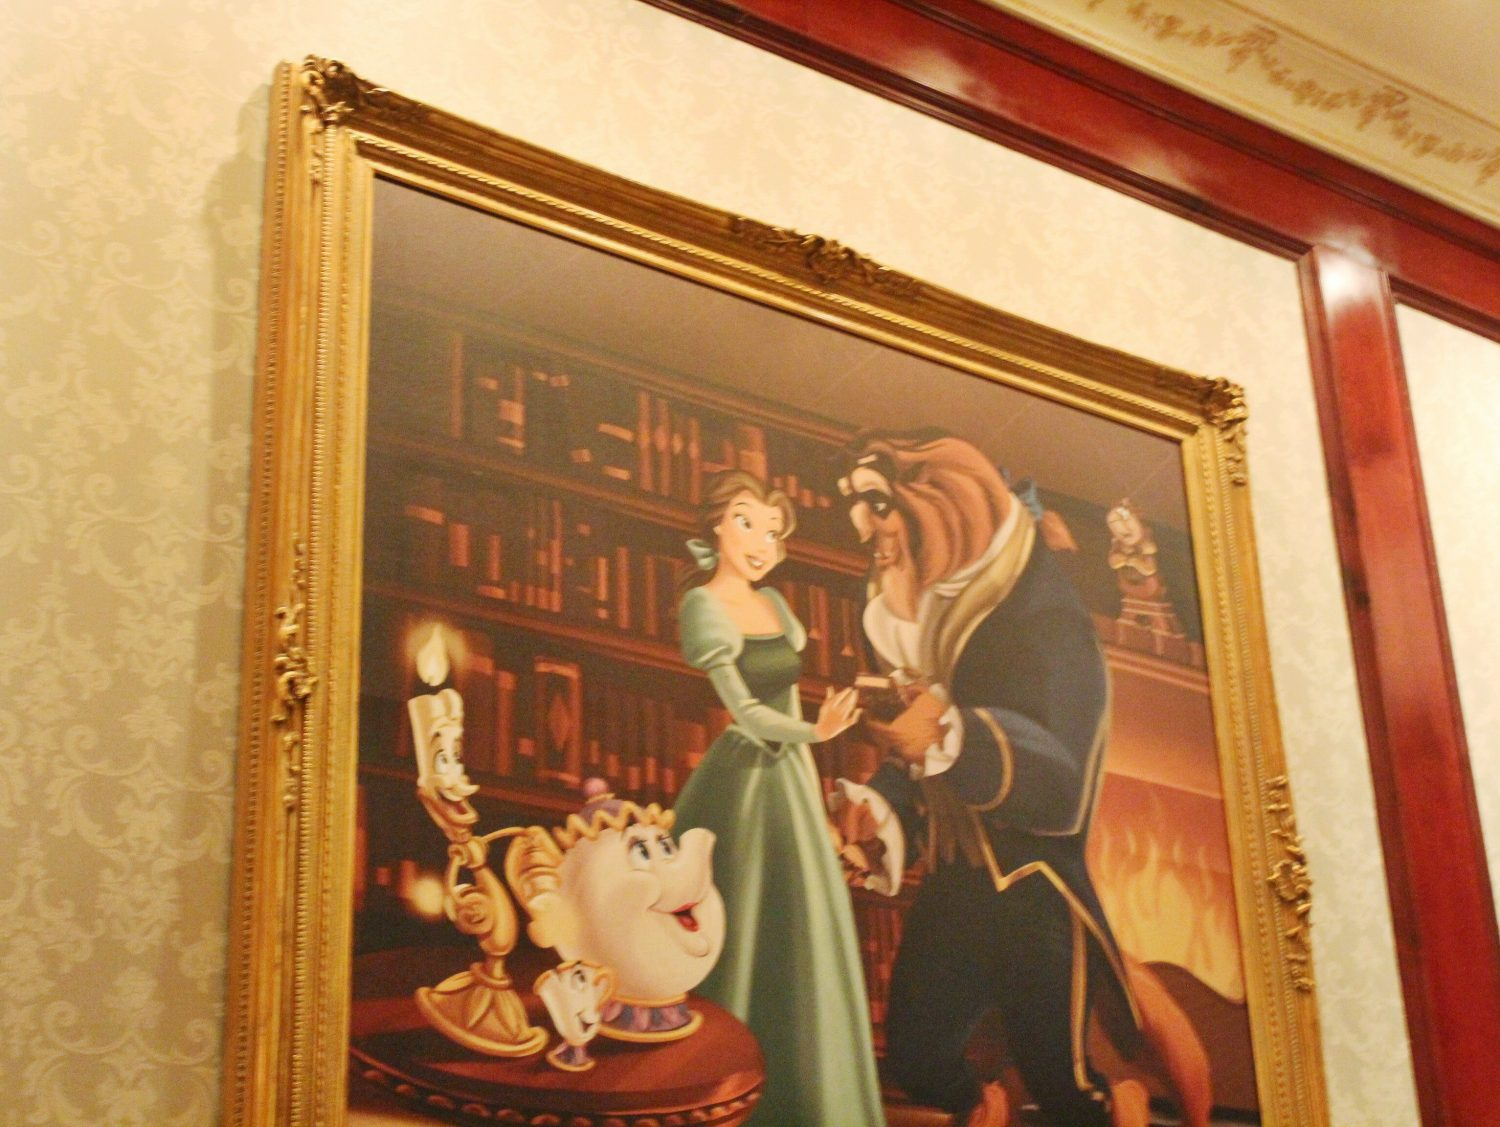 Walt Disney World Be Our Guest Restaurant